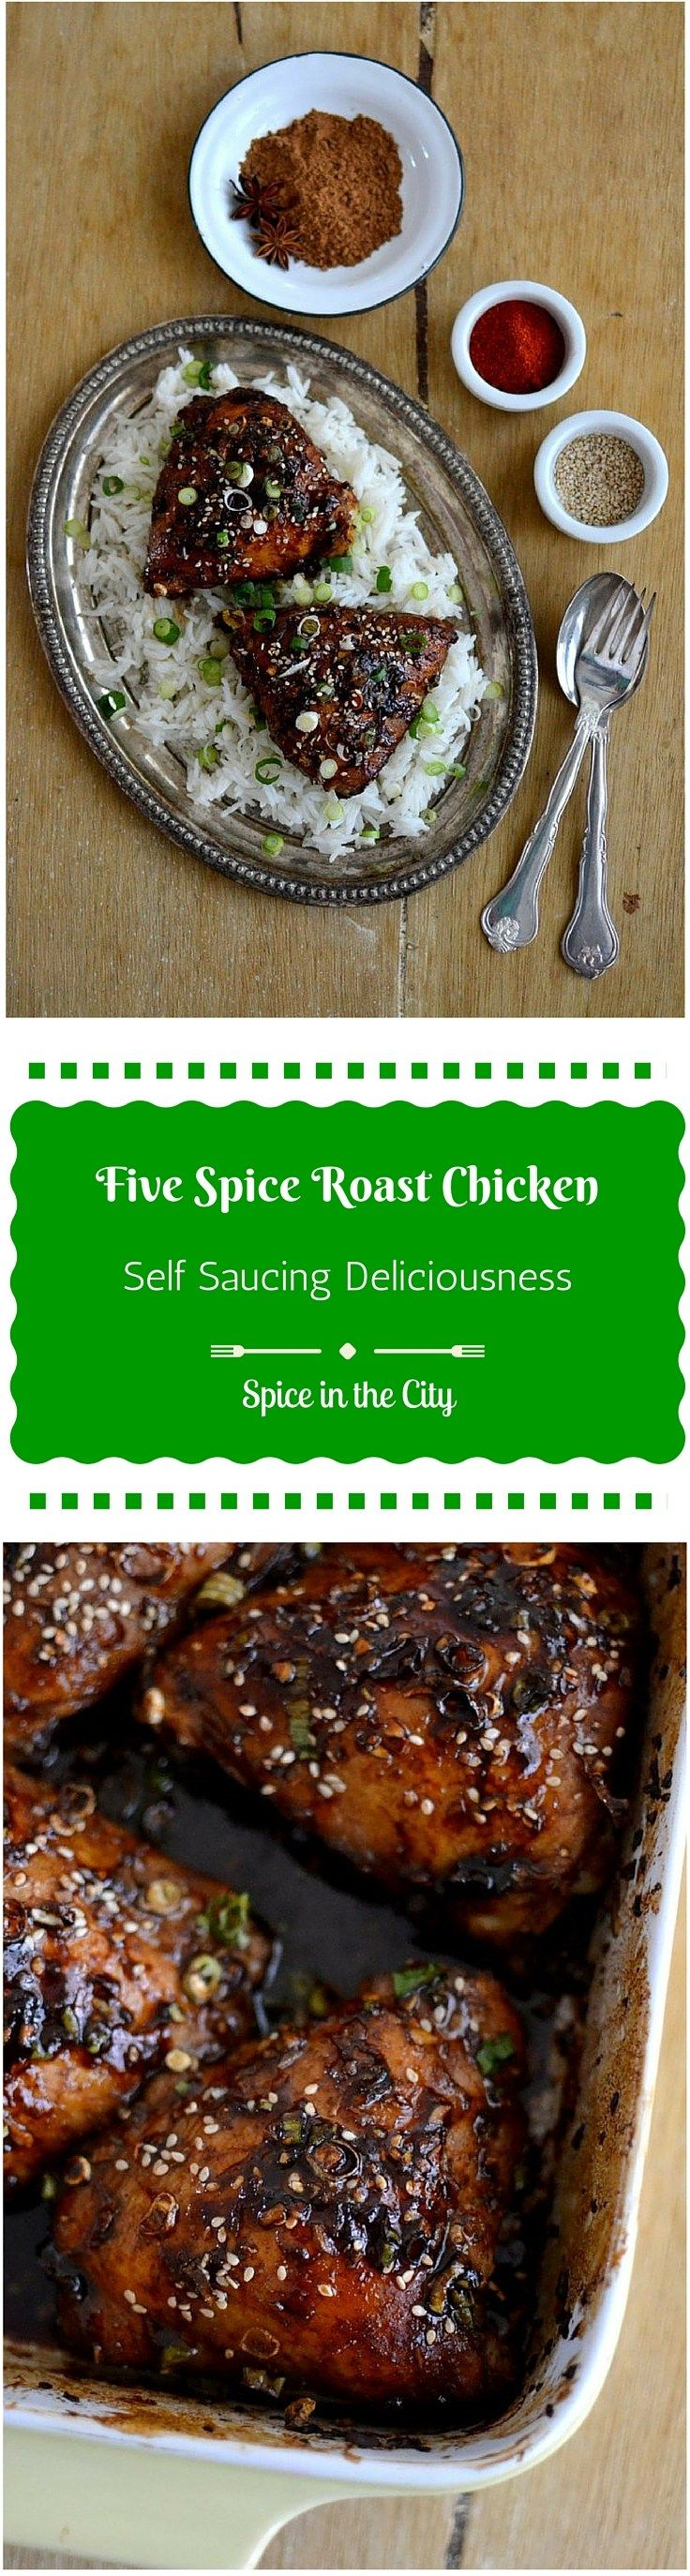 Five Spice Roast Chicken | Spice in the City: Chinese Five Spice powder is the star of this wonderful roasted Chicken dish with incredible flavors! It is self-saucing, so just serve over steamed rice for an easy yet stunning meal!